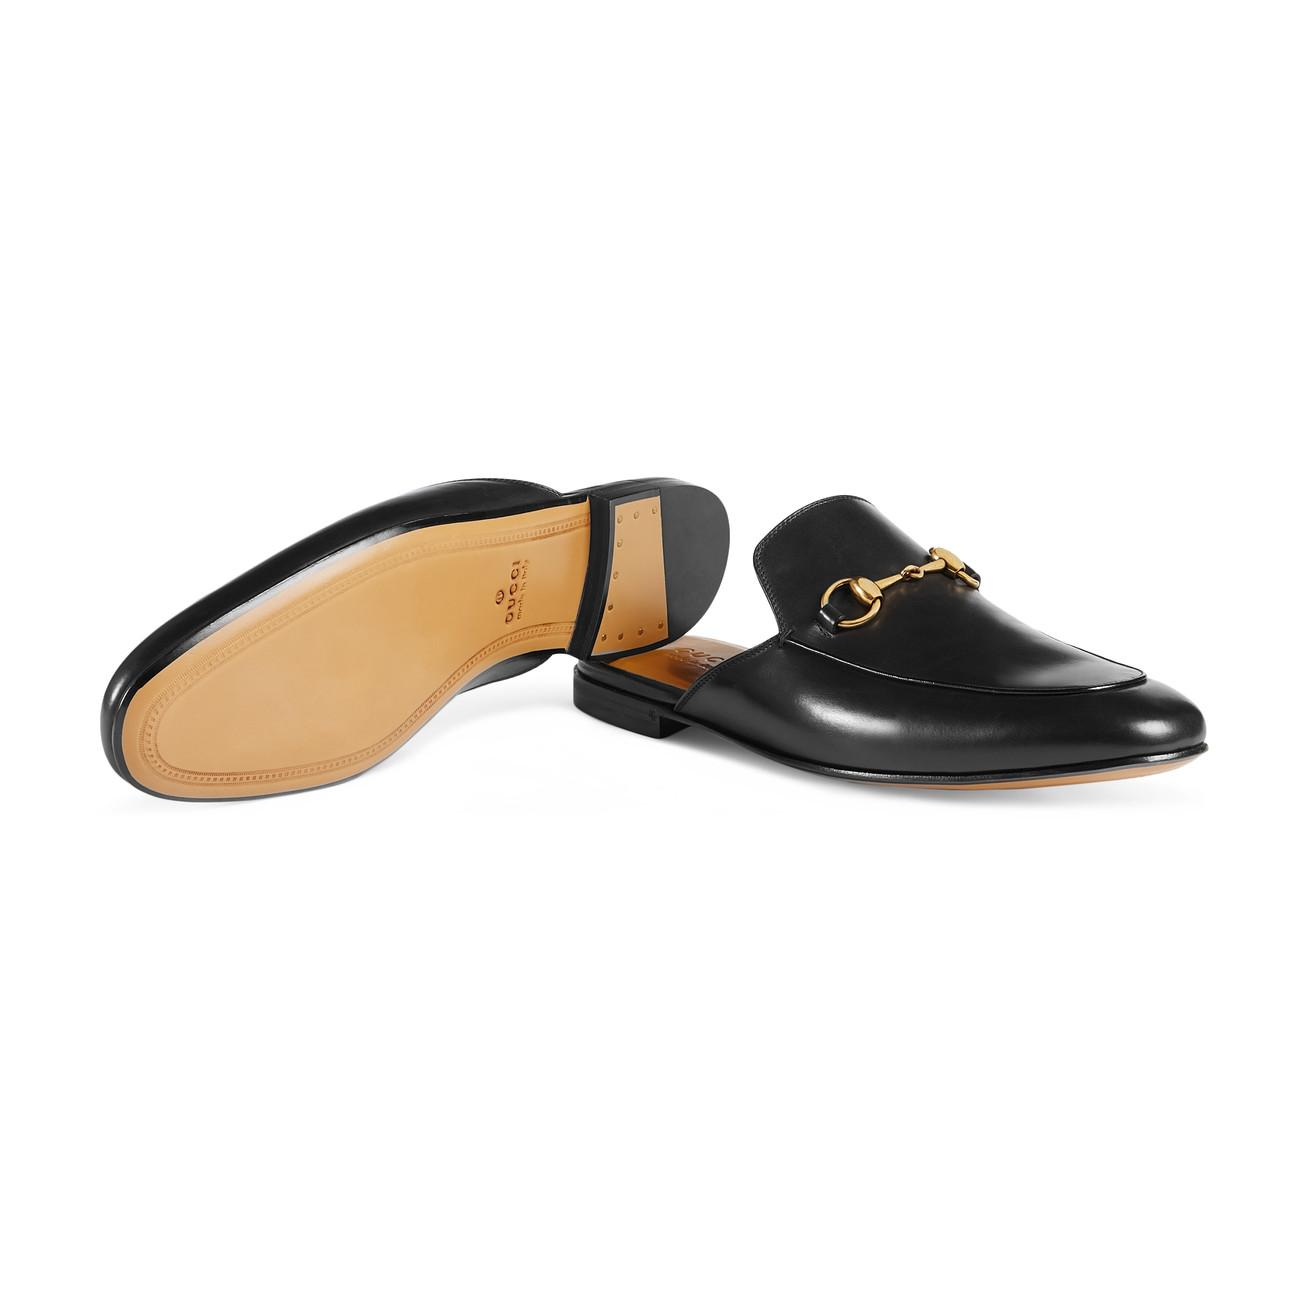 229b35ada6cd Gucci - Black Leather Horsebit Slipper for Men - Lyst. View fullscreen